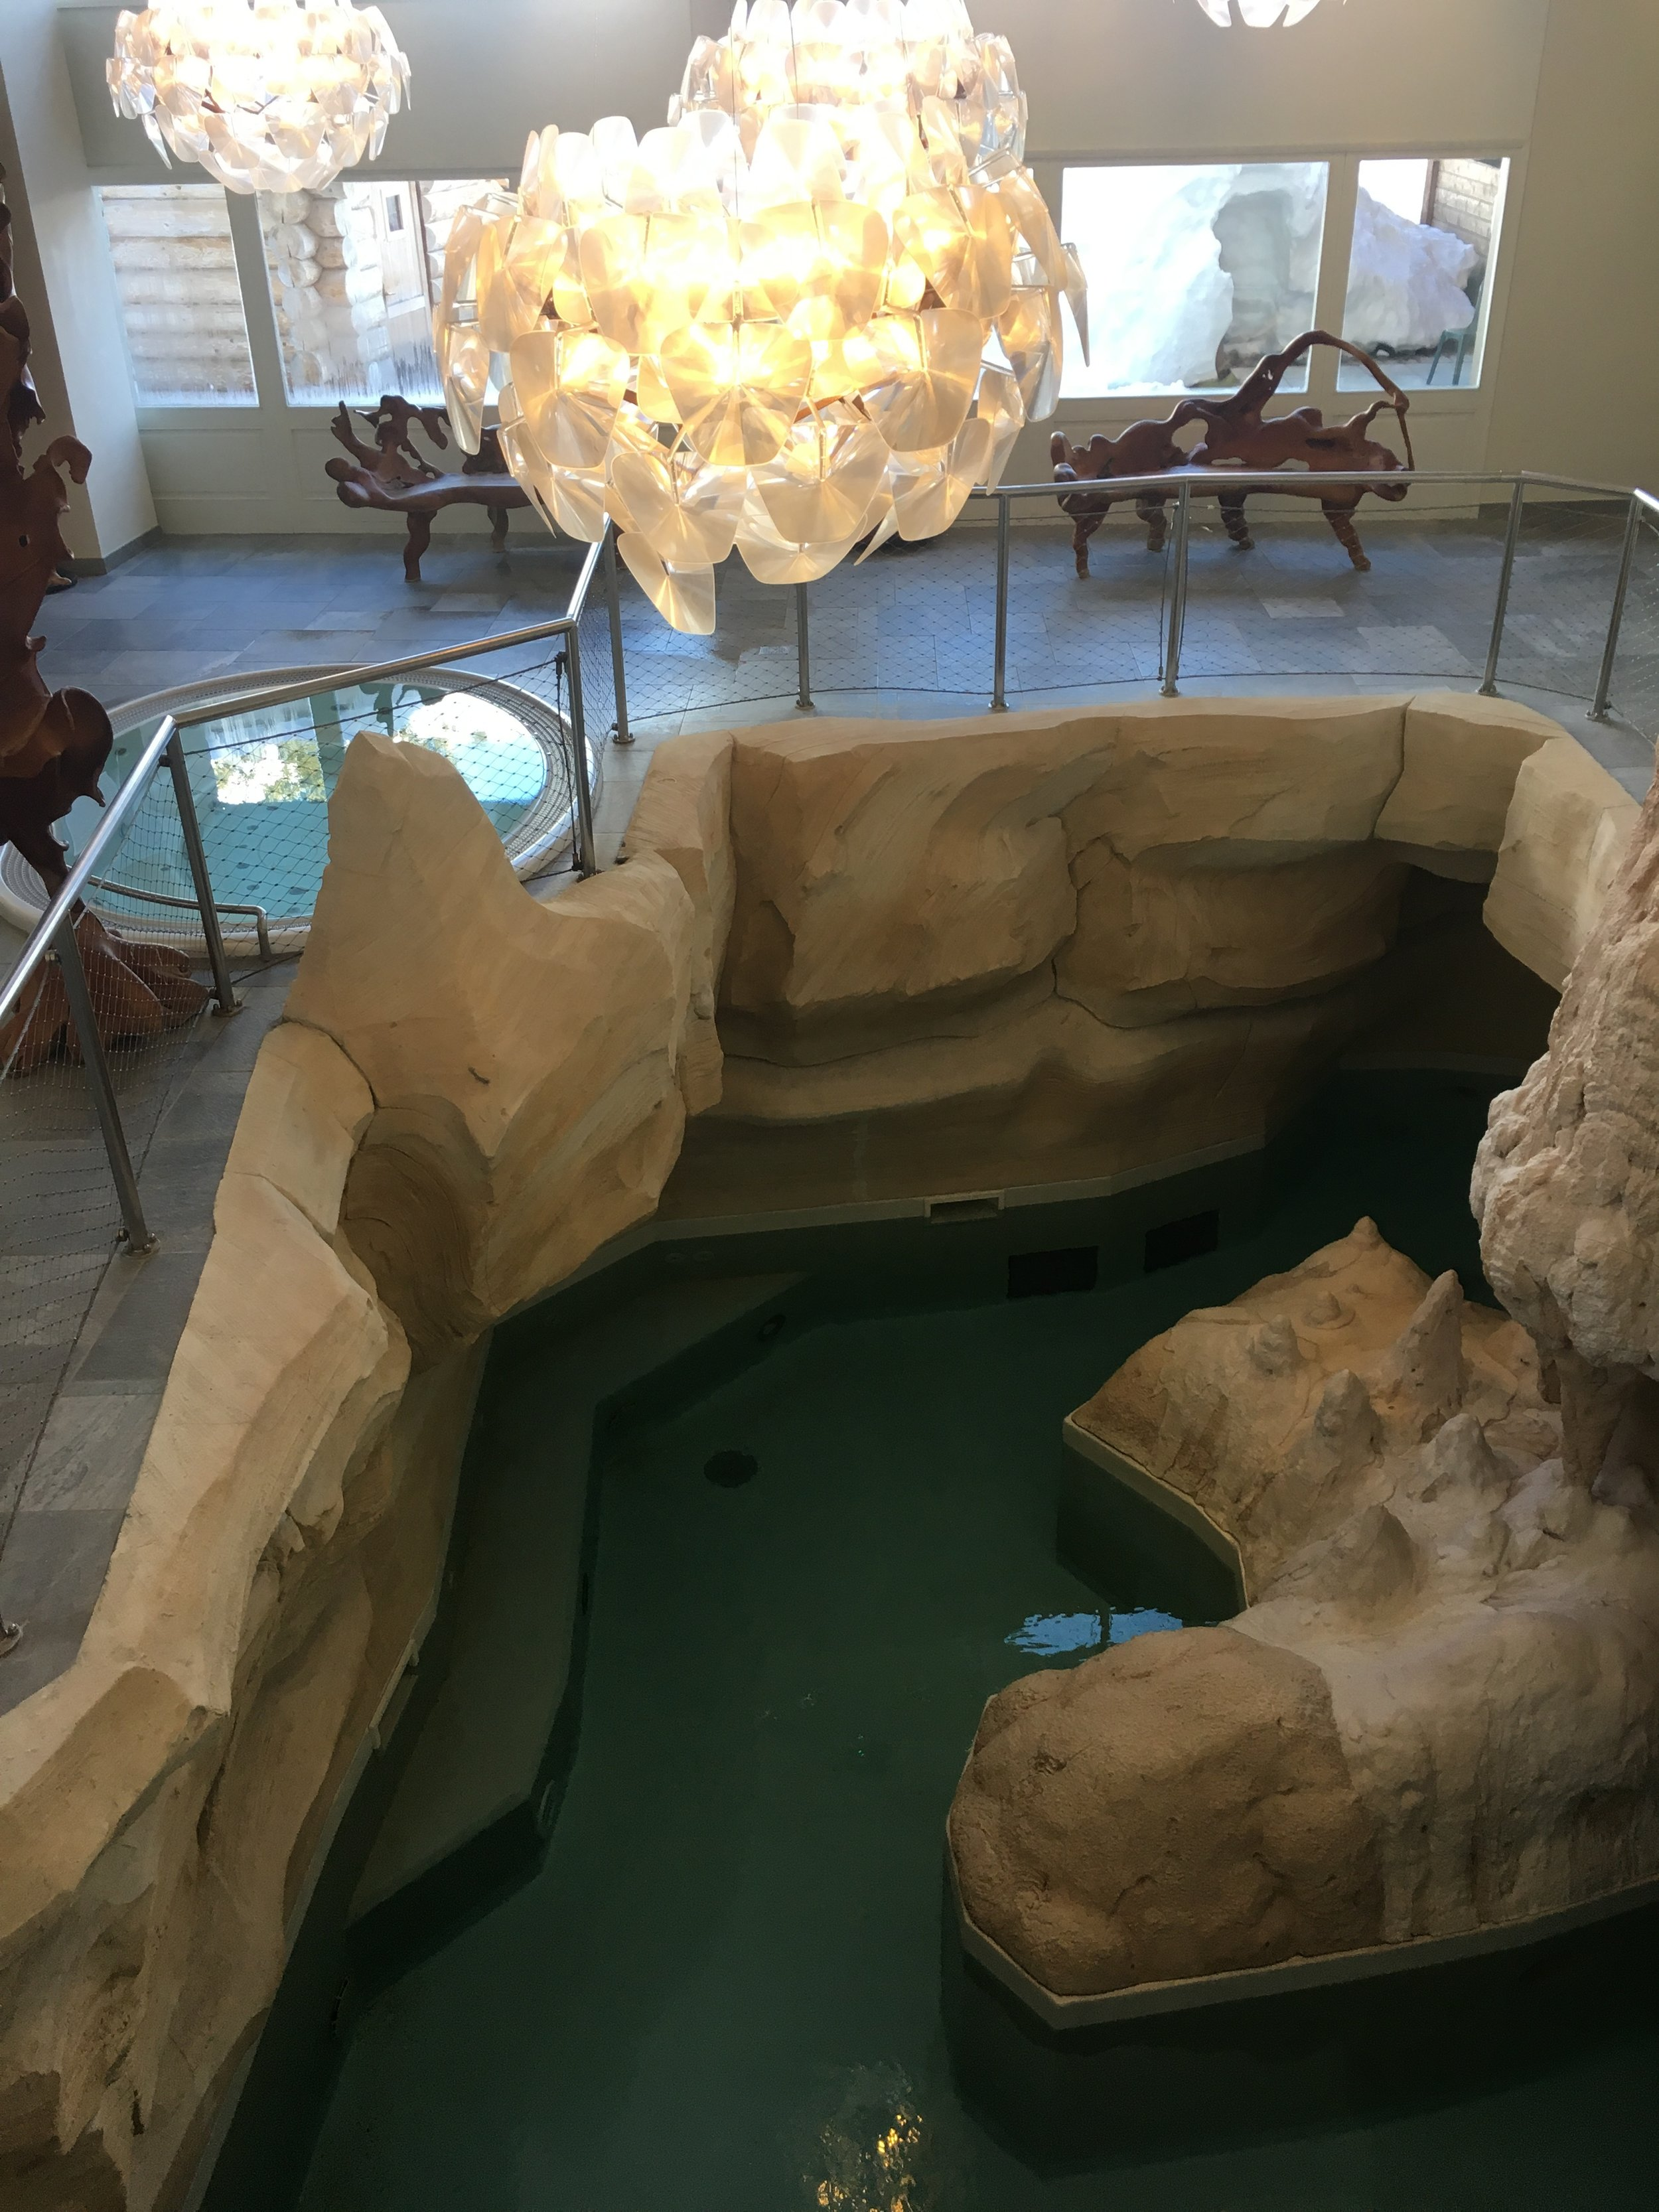 The Spa luxury spa swimming pool relaxation centre.jpg